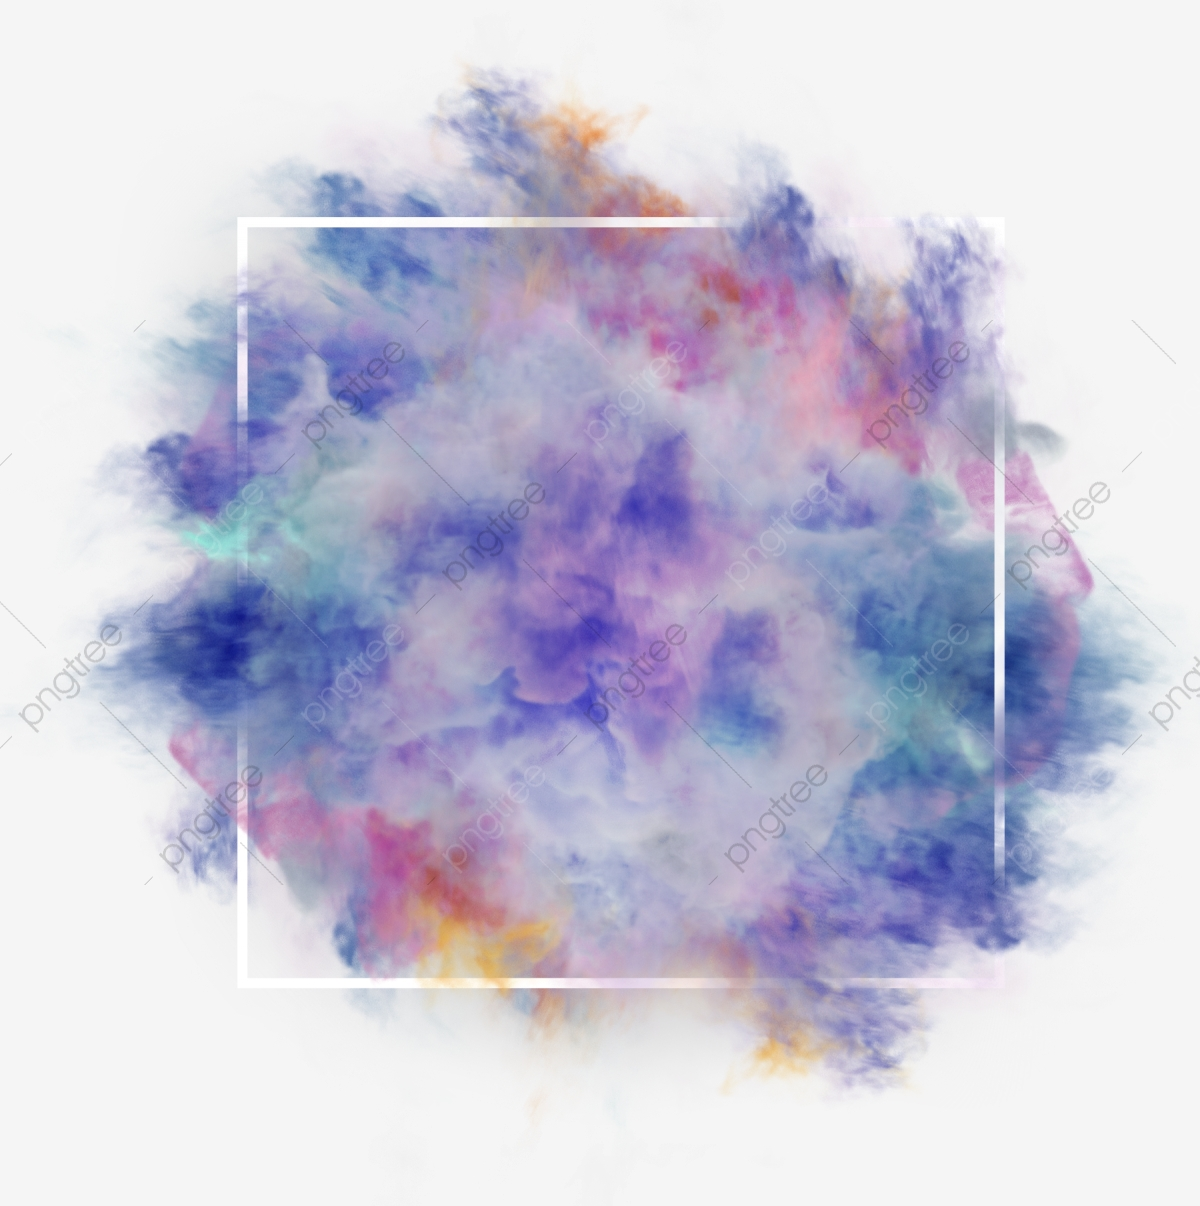 Multi Colorful Smoke Abstract Frame Watercolor Paint Blue